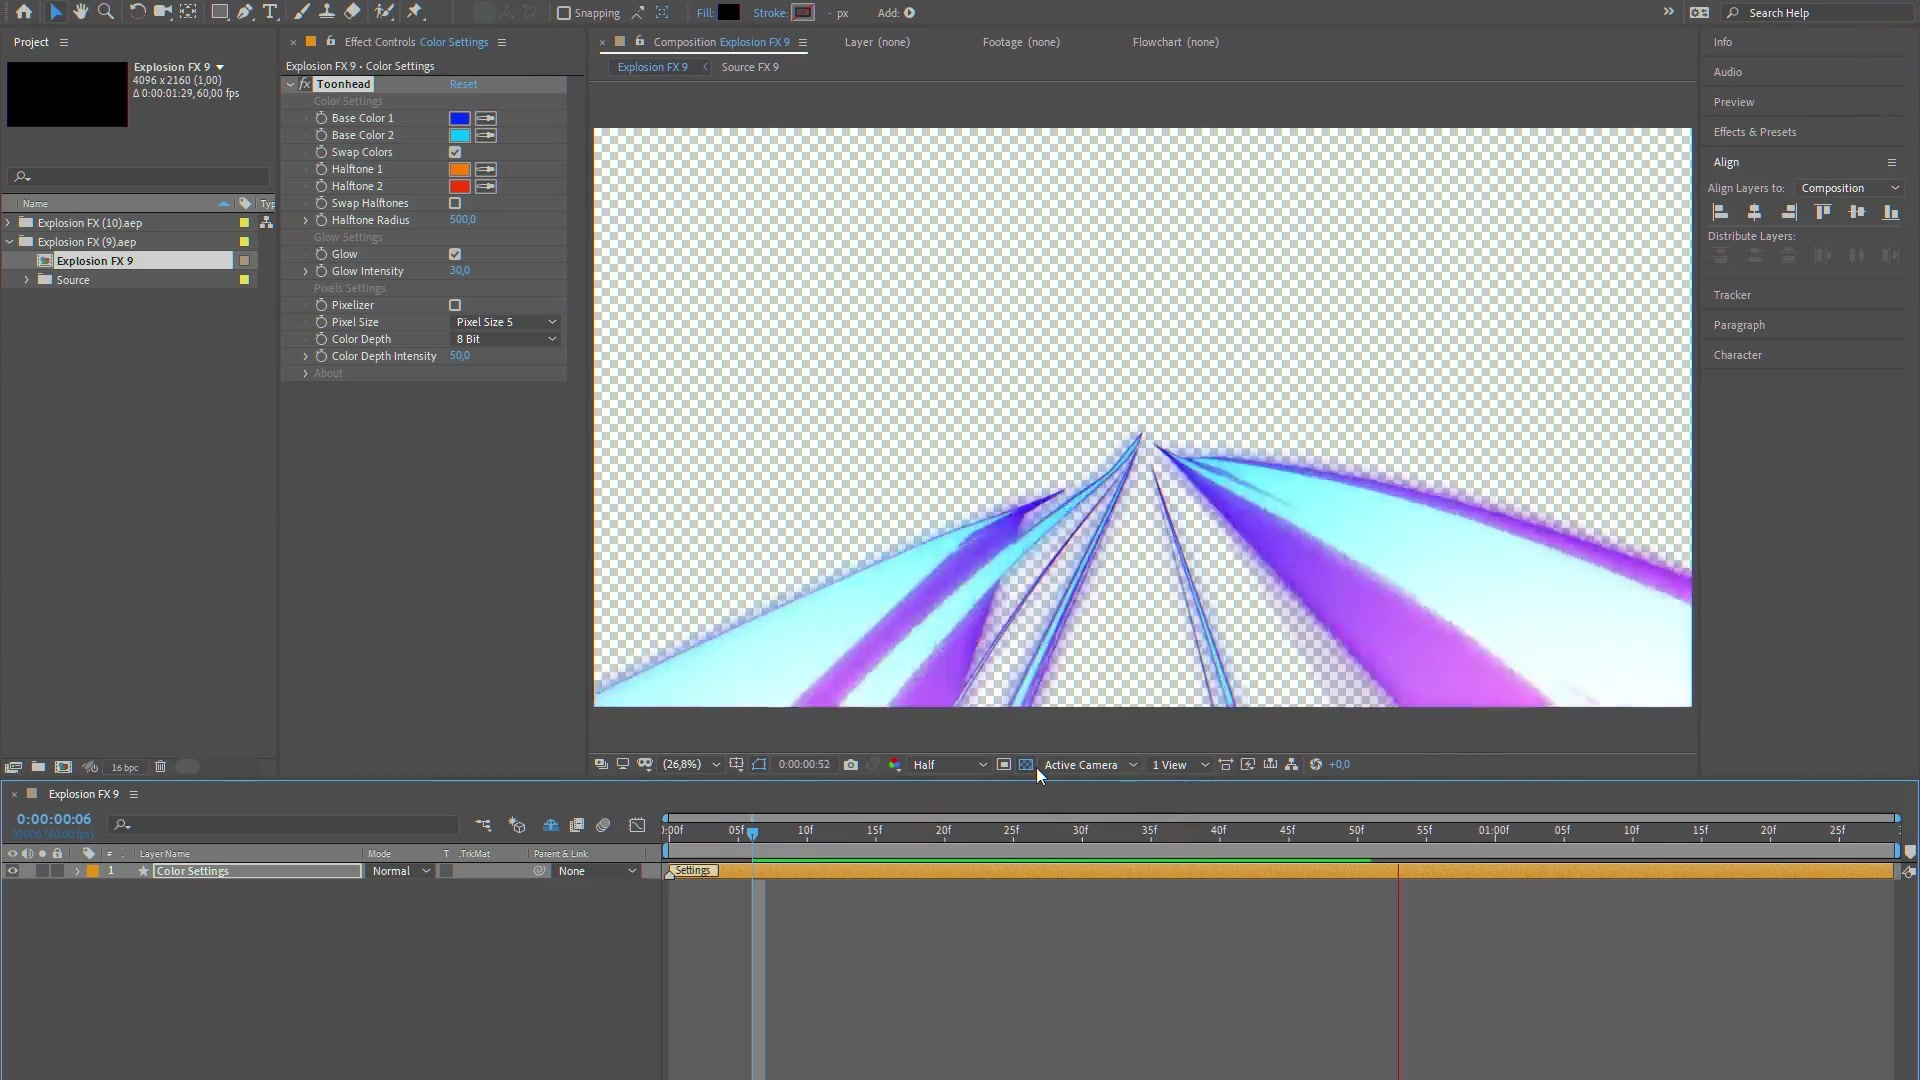 Toonhead (Explosion FX Set 1) Videohive 26141570 After Effects Image 3